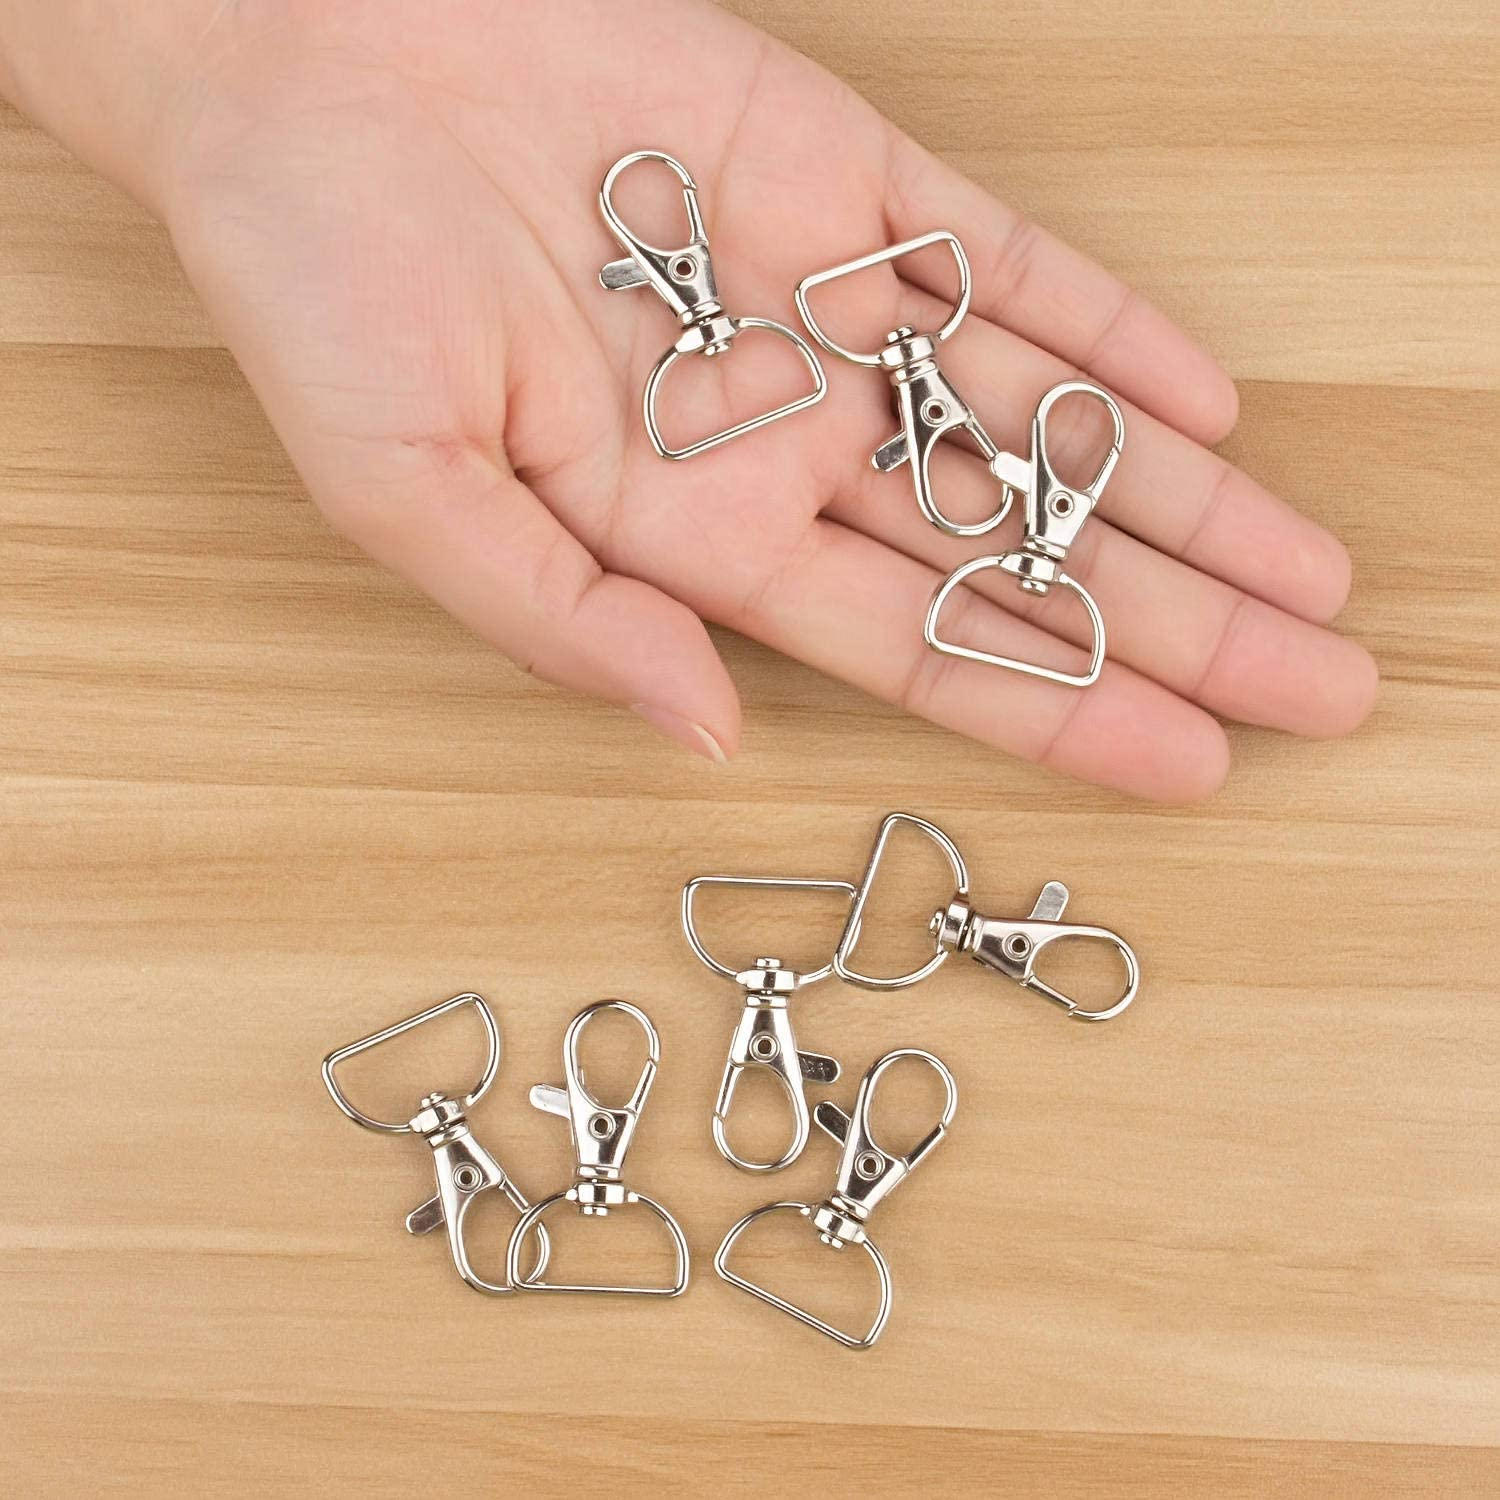 Acrux7 Swivel Clasps D Ring Metal Lobster Claw Clasps Lanyard Snap Hook for Crafting /& DIY Lanyard Making 100 Pack